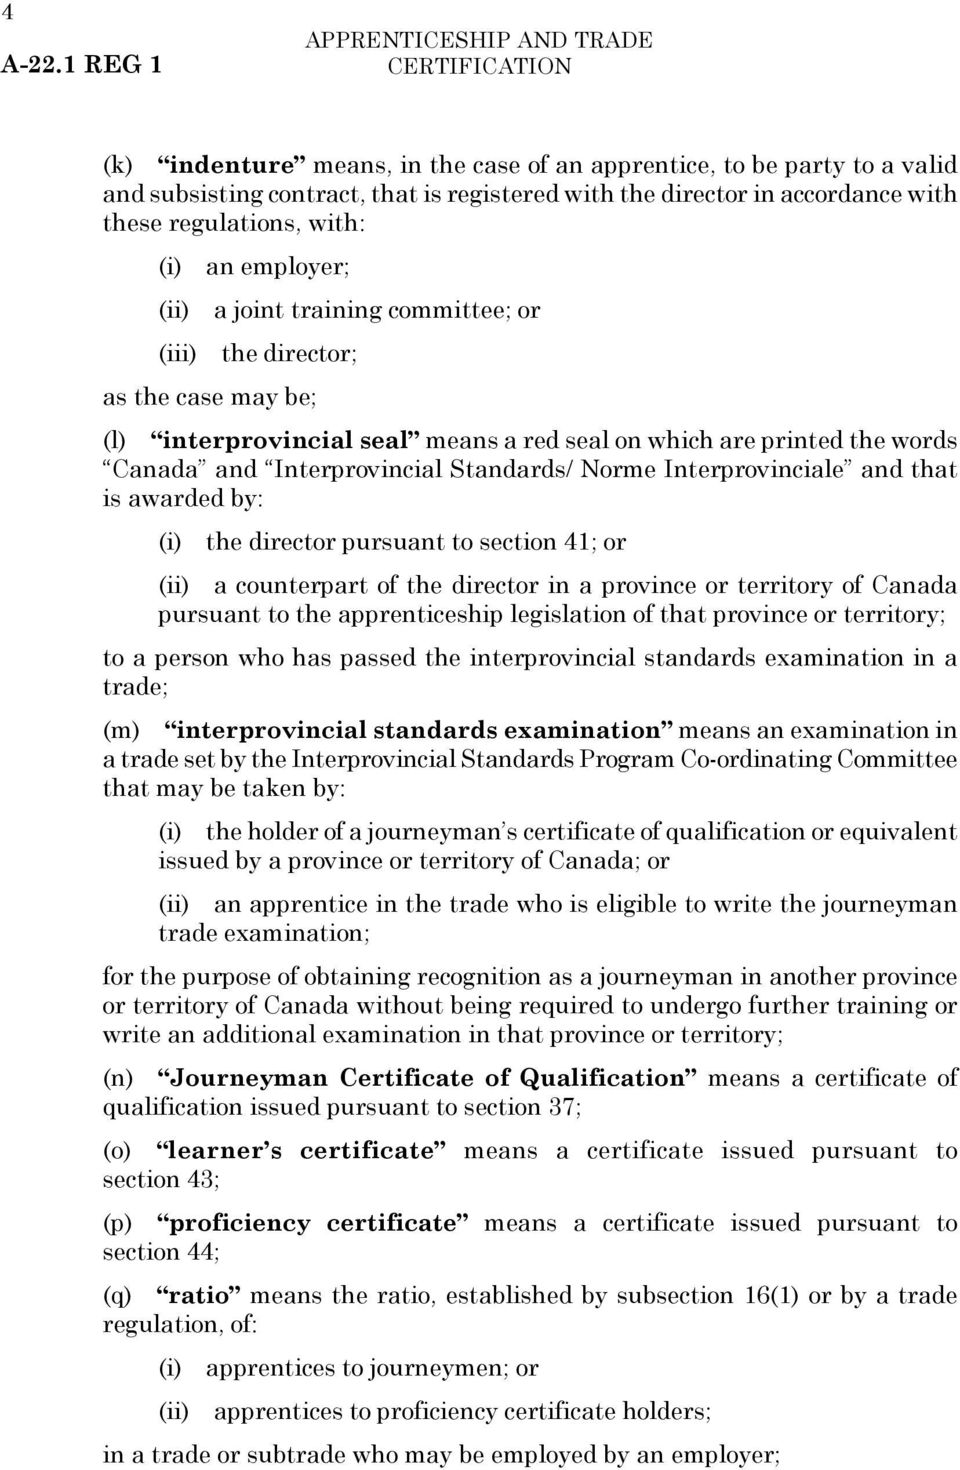 Interprovincial Standards/ Norme Interprovinciale and that is awarded by: (i) the director pursuant to section 41; or (ii) a counterpart of the director in a province or territory of Canada pursuant